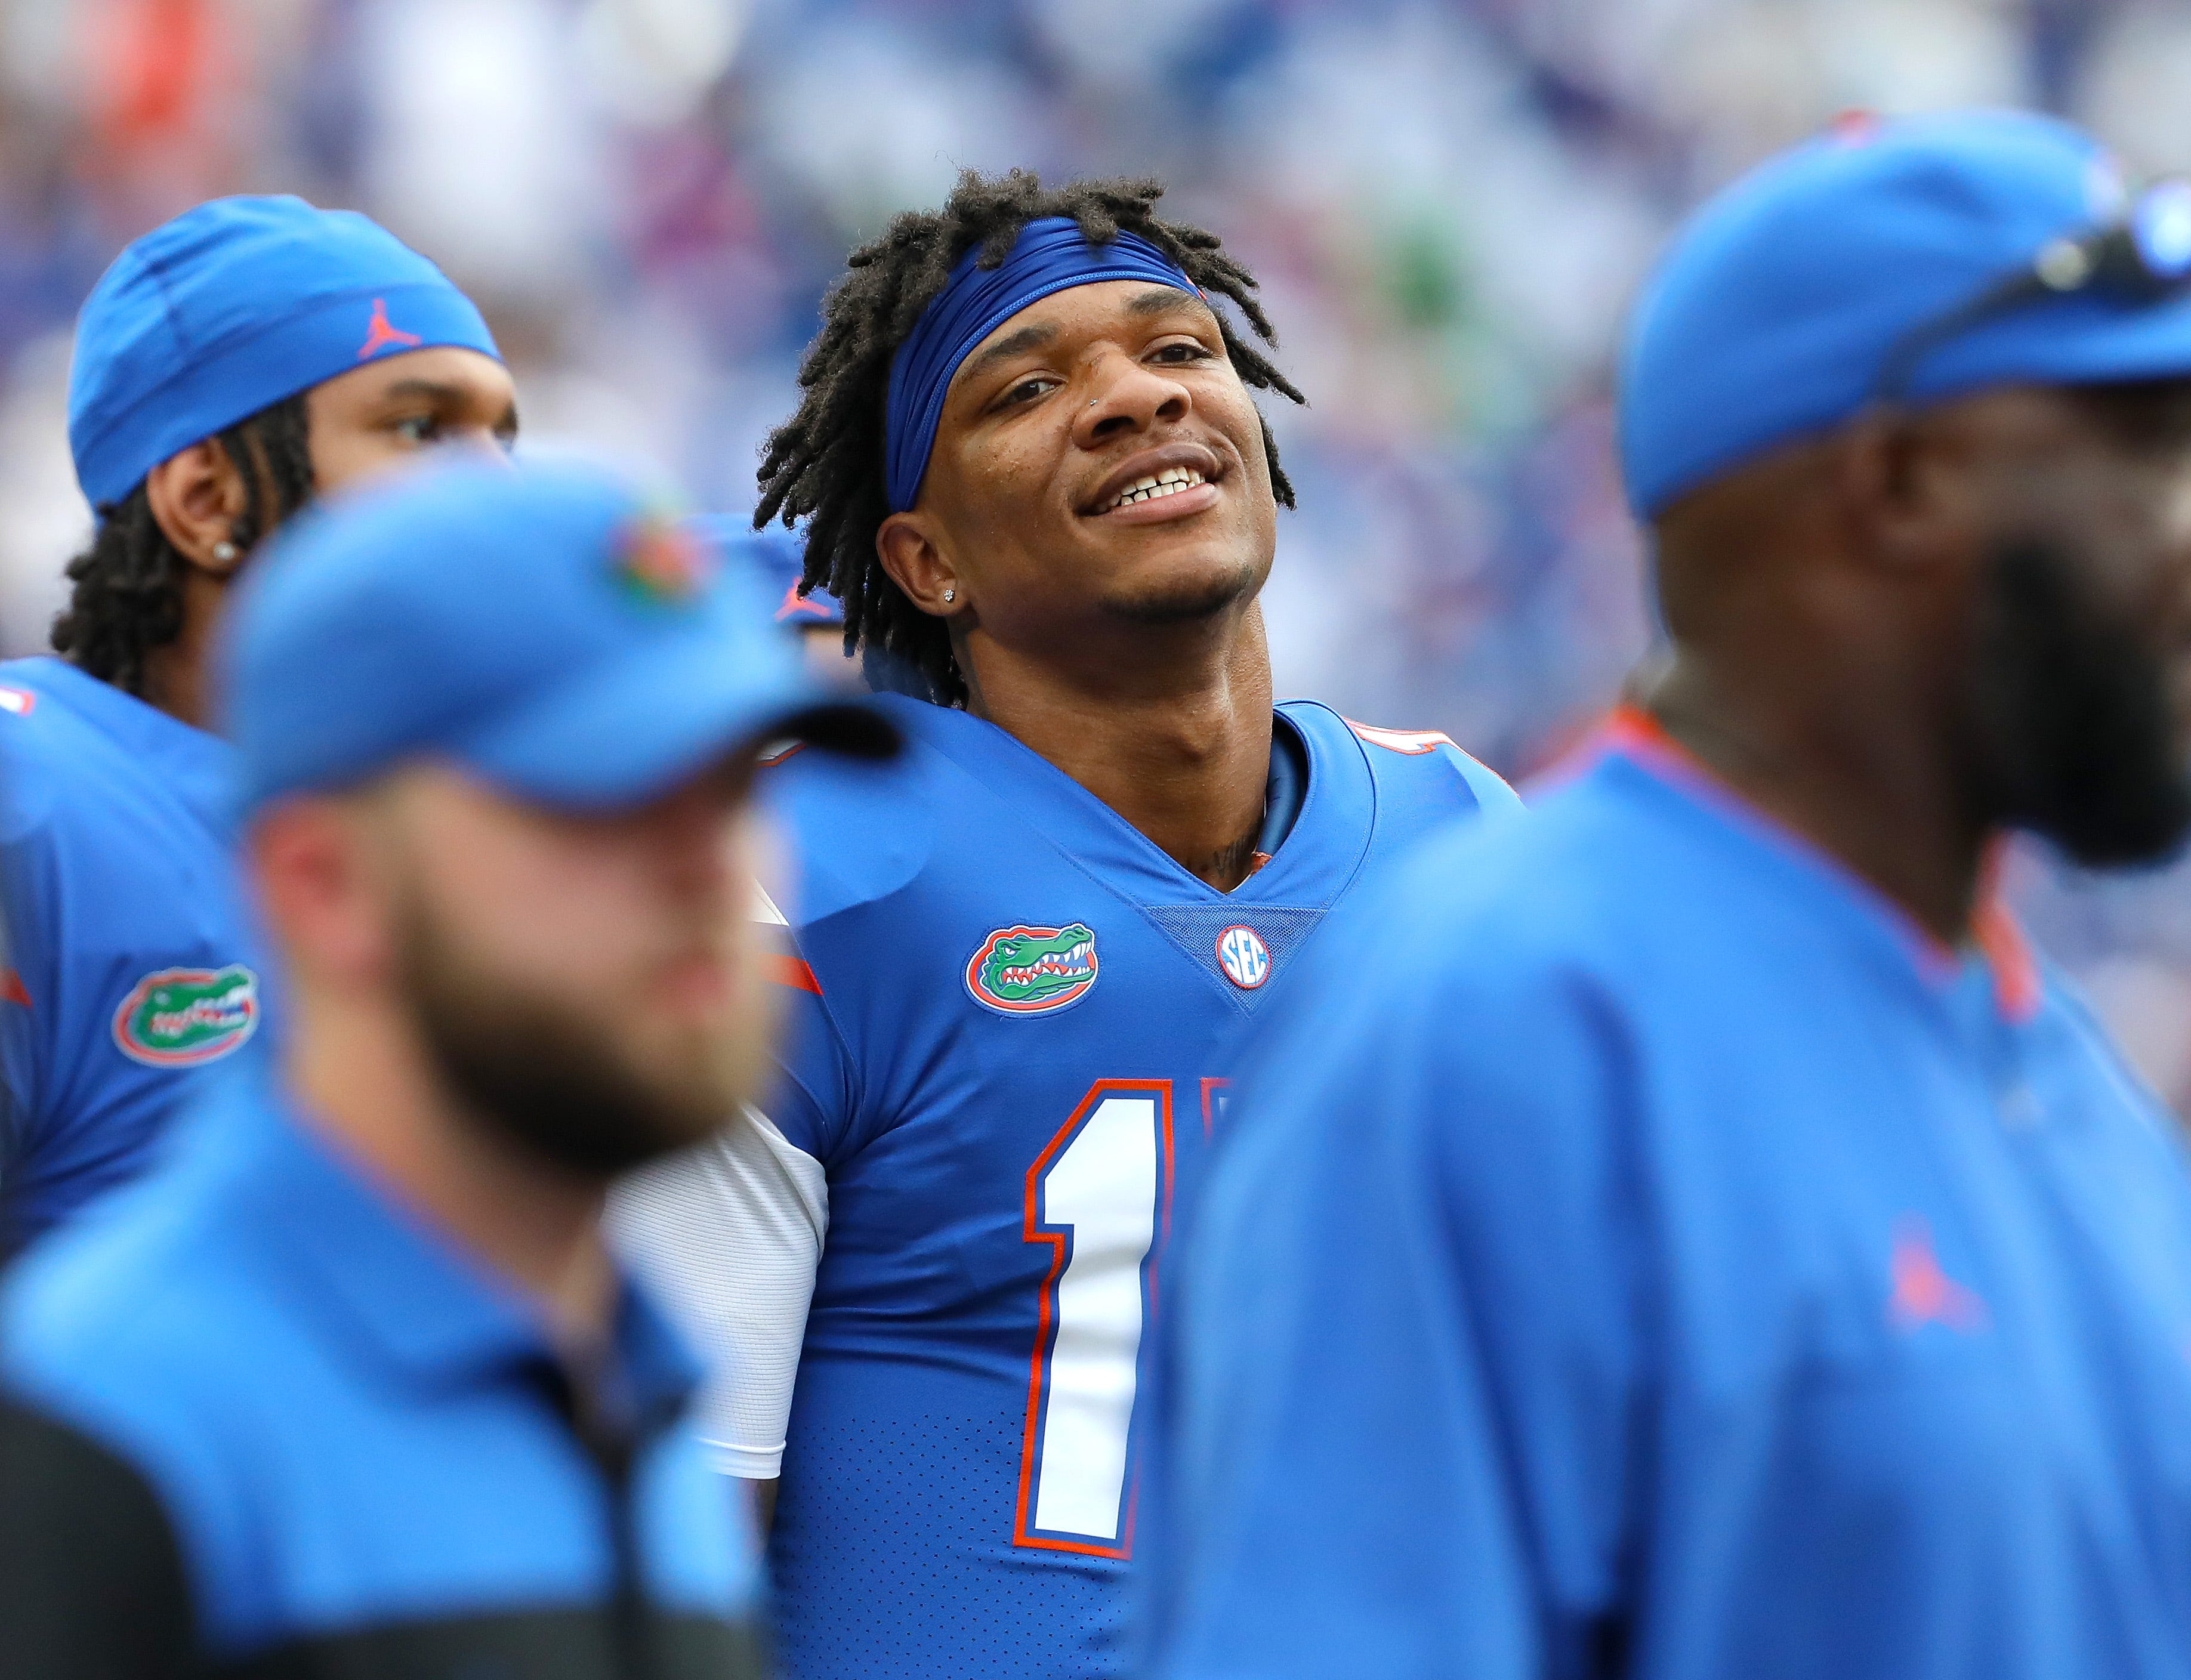 Florida Gators quarterback Anthony Richardson walks off the field at halftime during the football game between the Florida Gators and The Alabama Crimson Tide, at Ben Hill Griffin Stadium in Gainesville, Fla. Sept. 18, 2021.